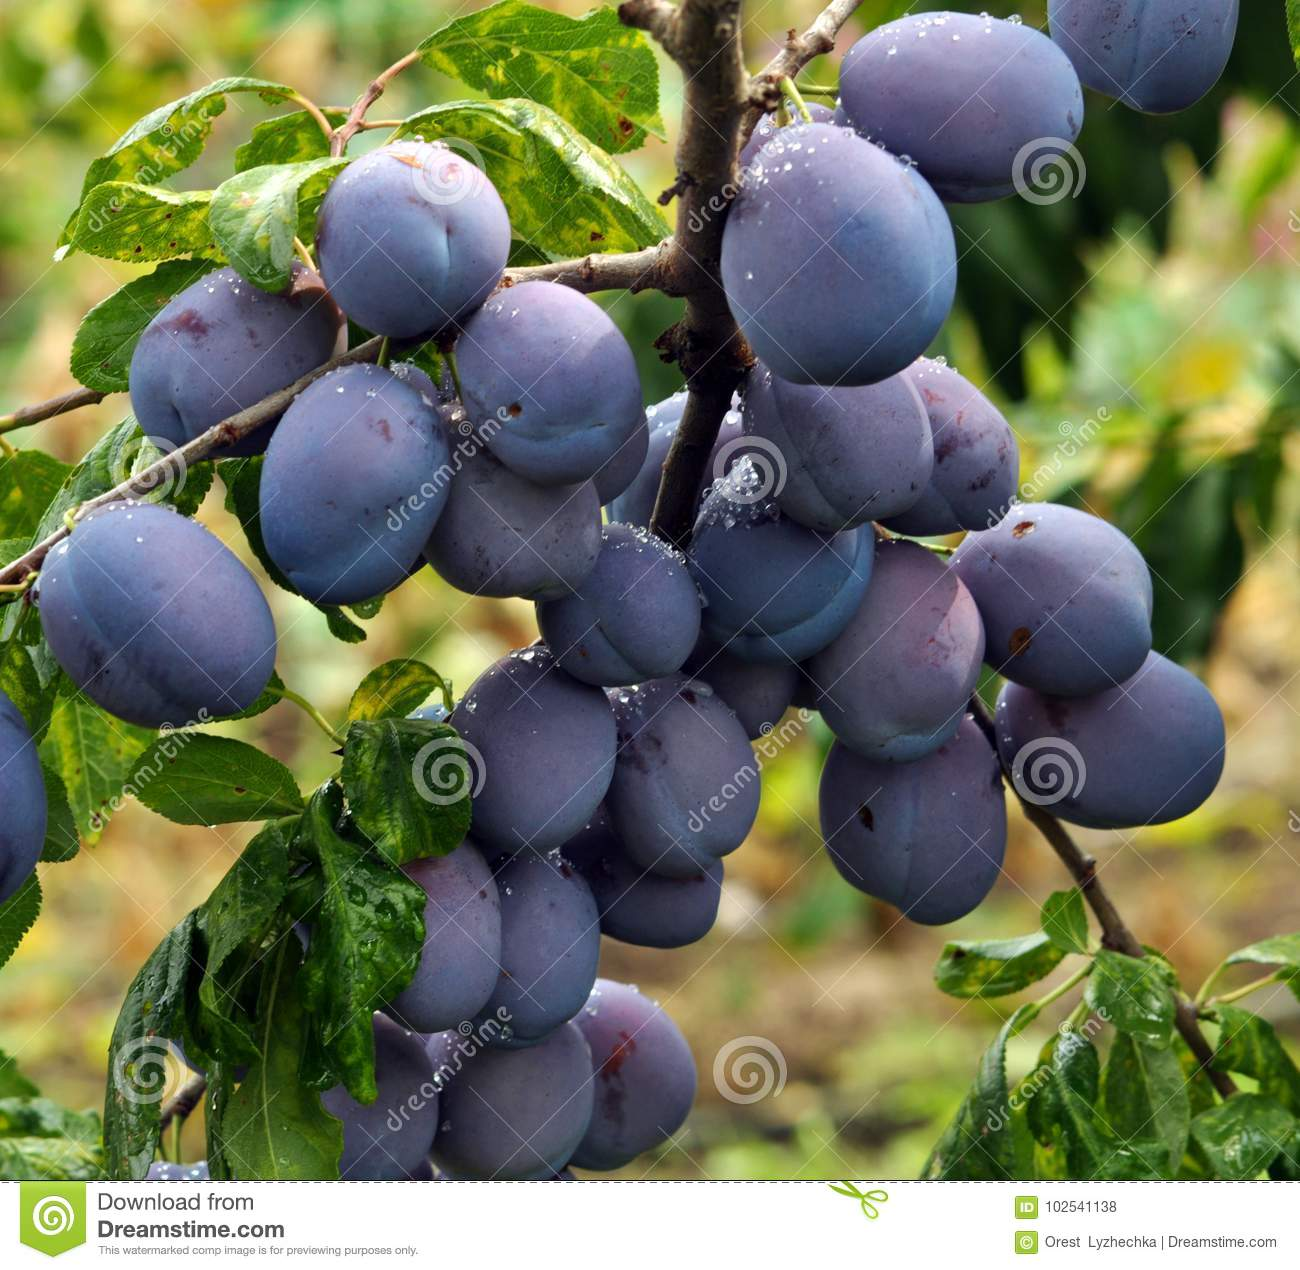 plum branch mature singles Singles only sort by most popular name - a to z name - z to a size - small to large size - large to small stitches - high to low stitches - low to high price - high to low price - low to high.